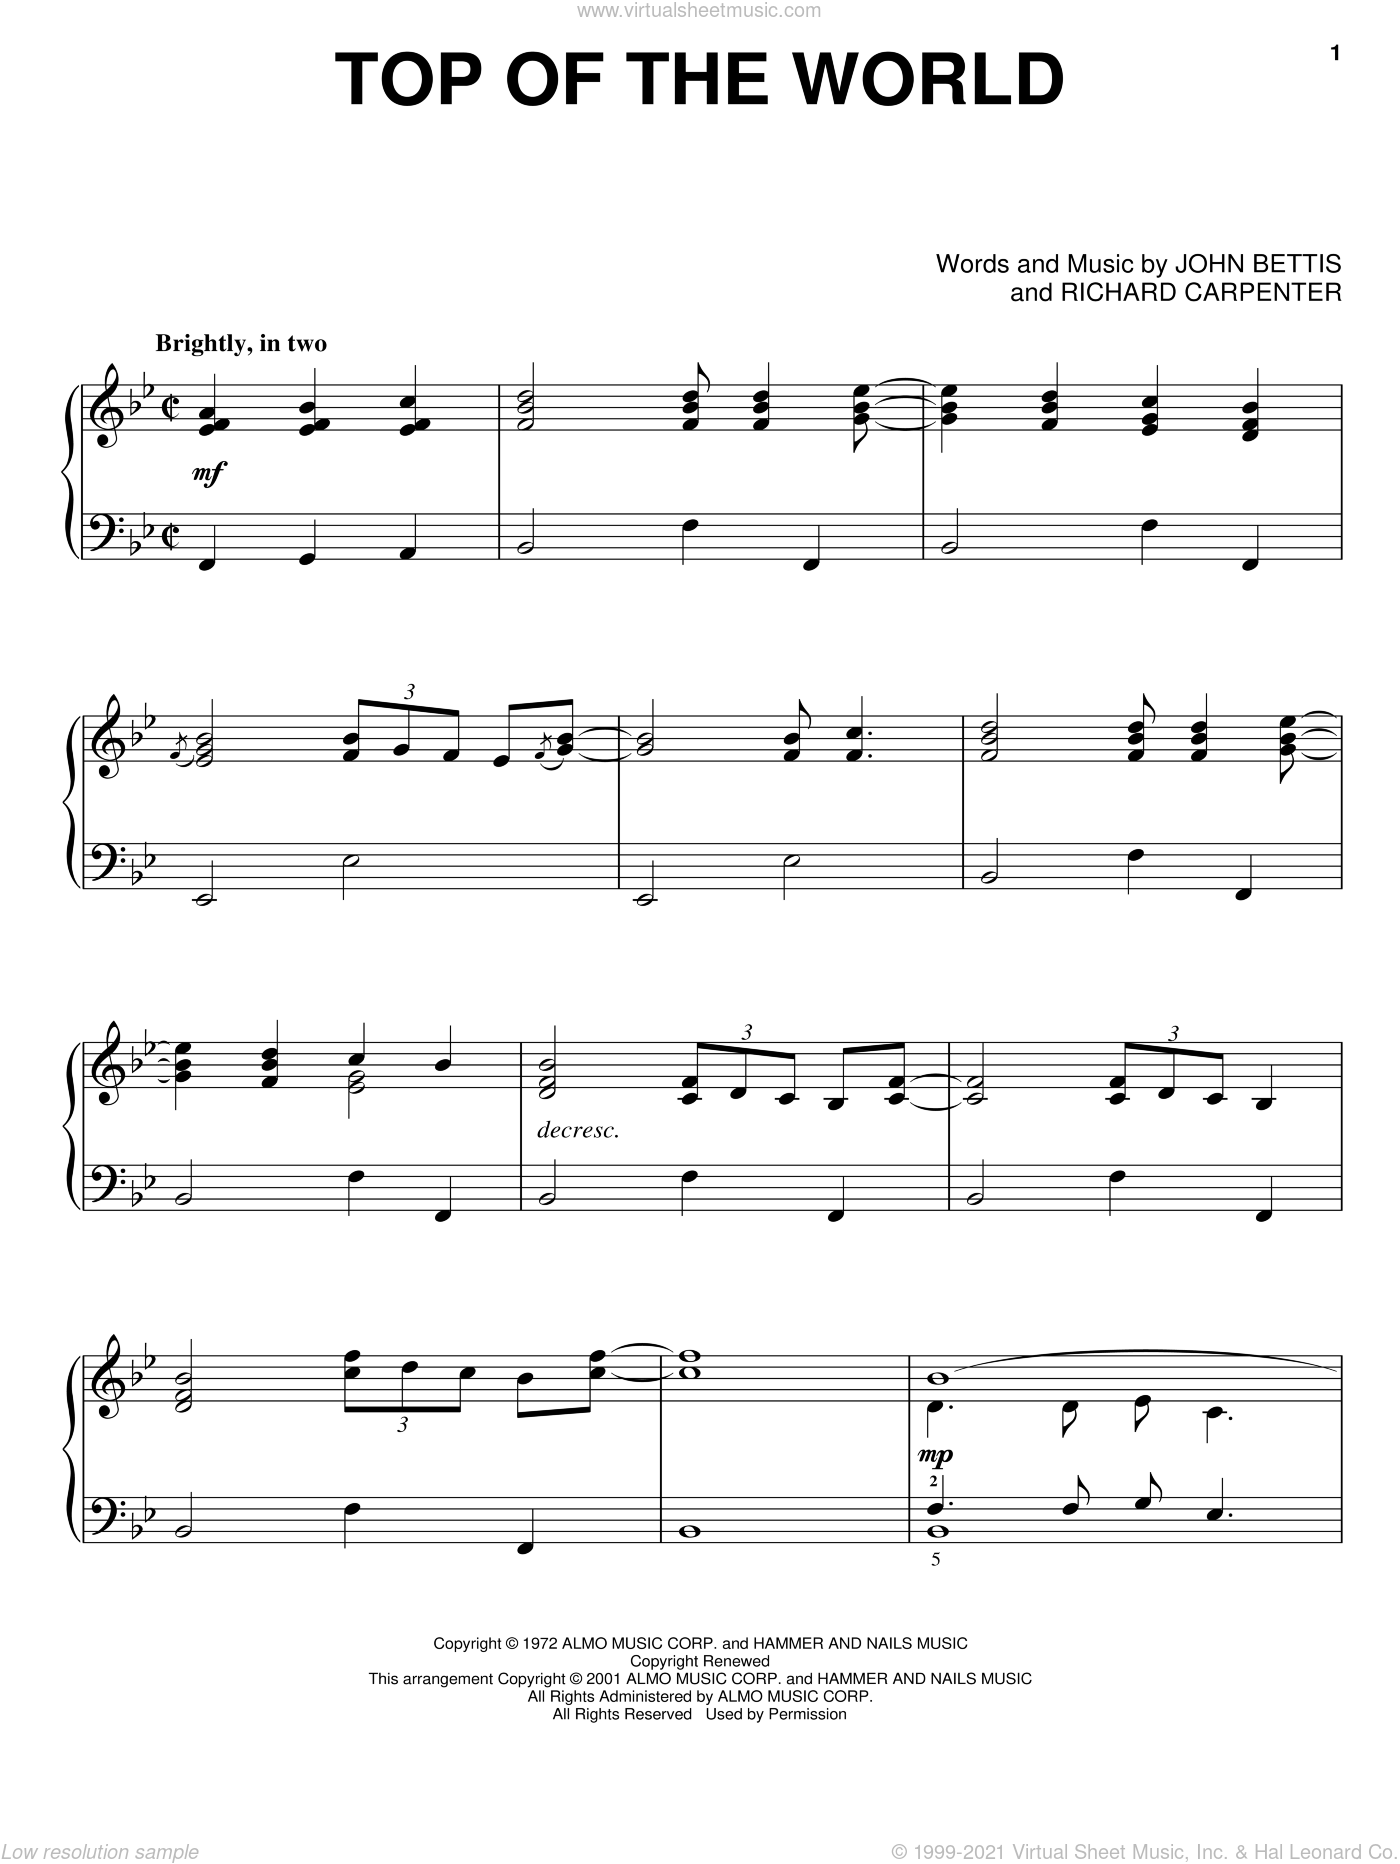 Top Of The World sheet music for piano solo by Carpenters and John Bettis. Score Image Preview.